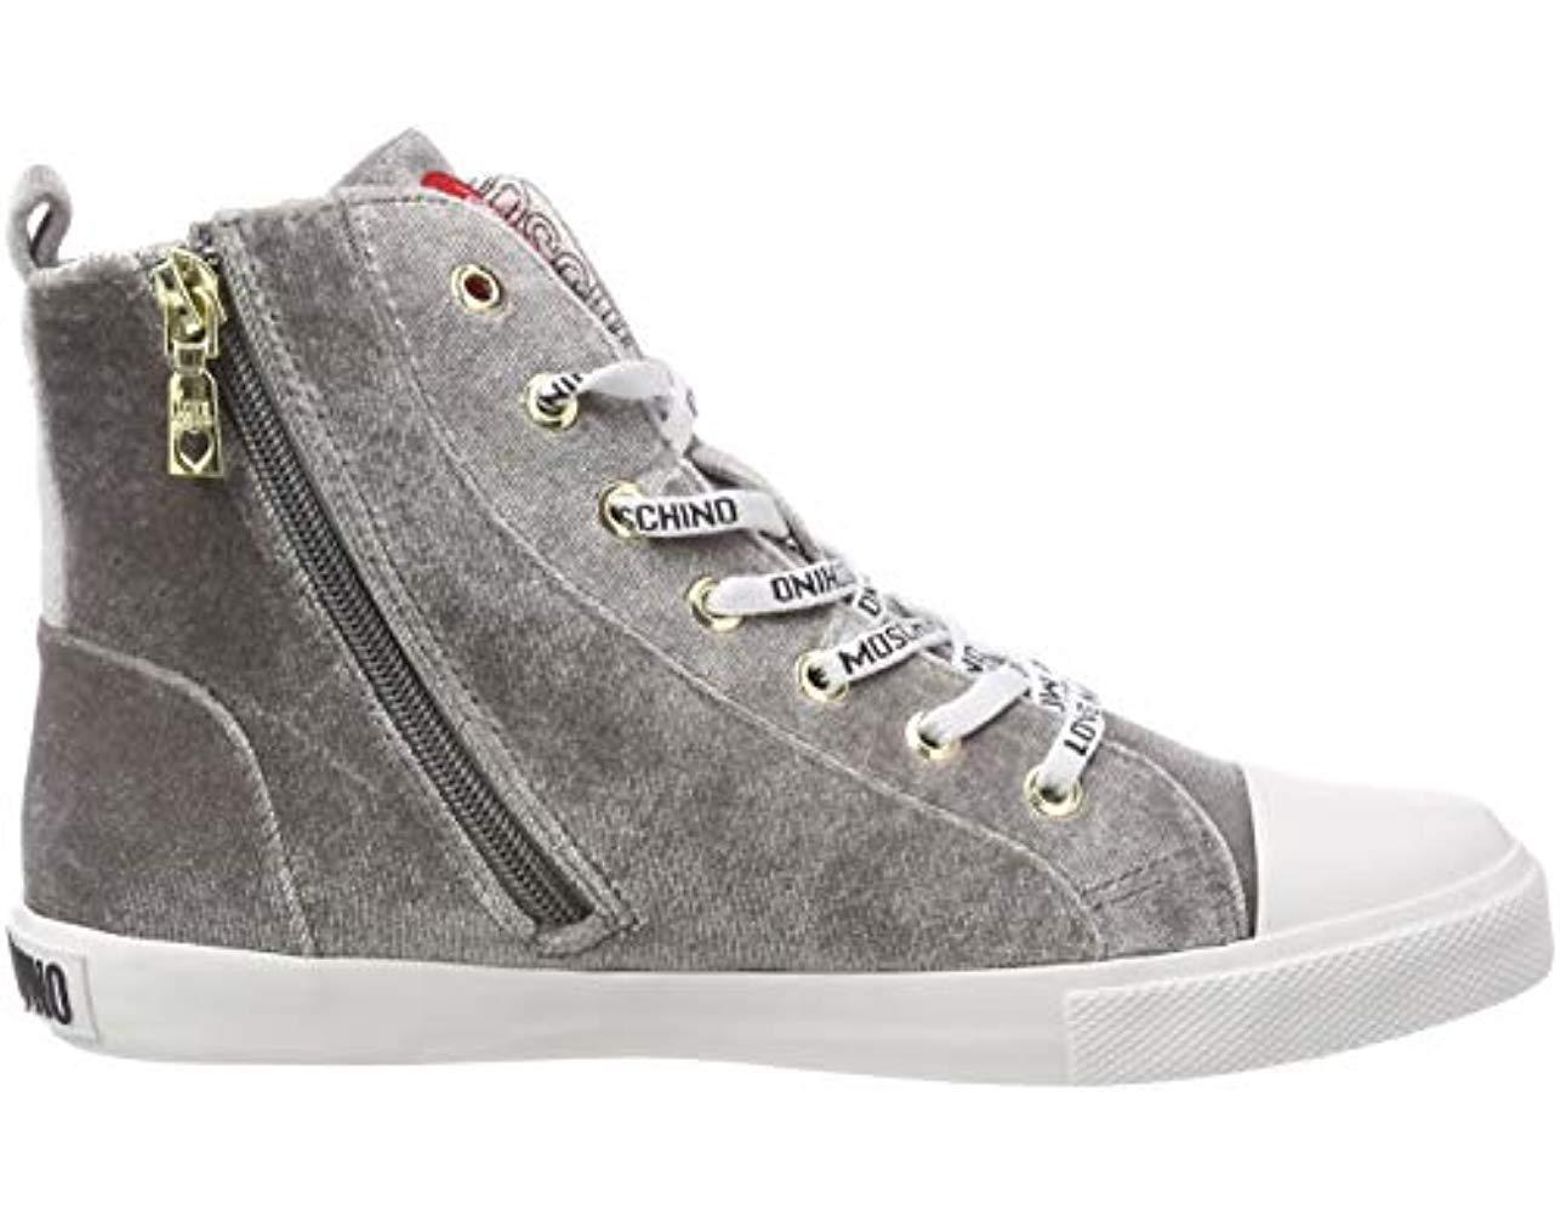 Love Save Gray nod Velluto Trainers gomma30 Hi In Sca Top Moschino tdsQrh